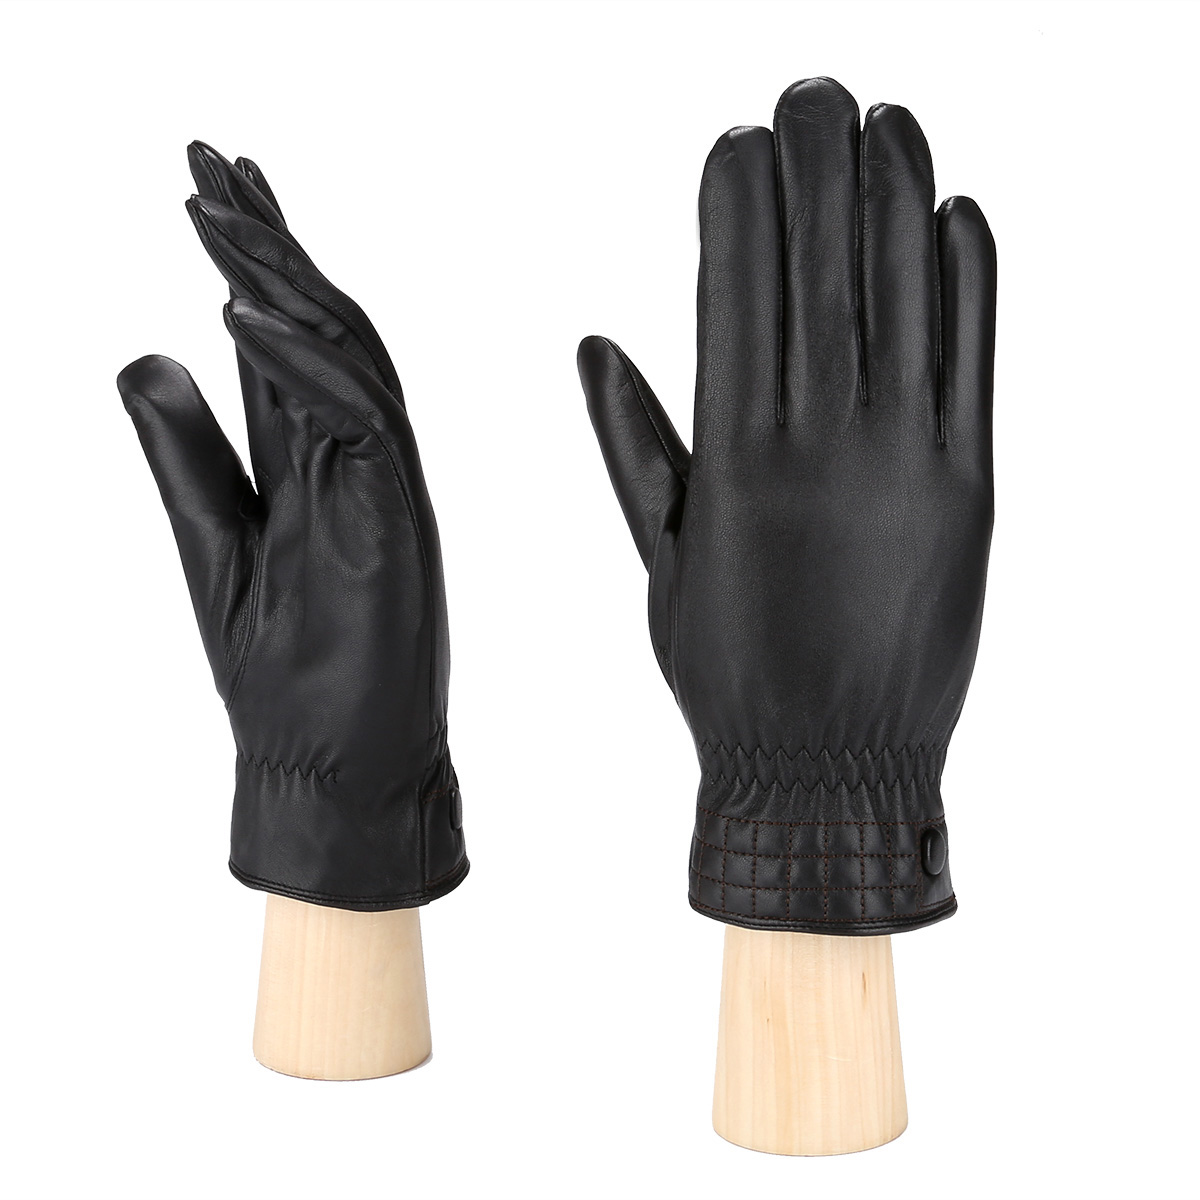 MoDA Men's Mr. Minneapolis Men's Slim Fit Checkered Stitch Leather Gloves C0176 Black